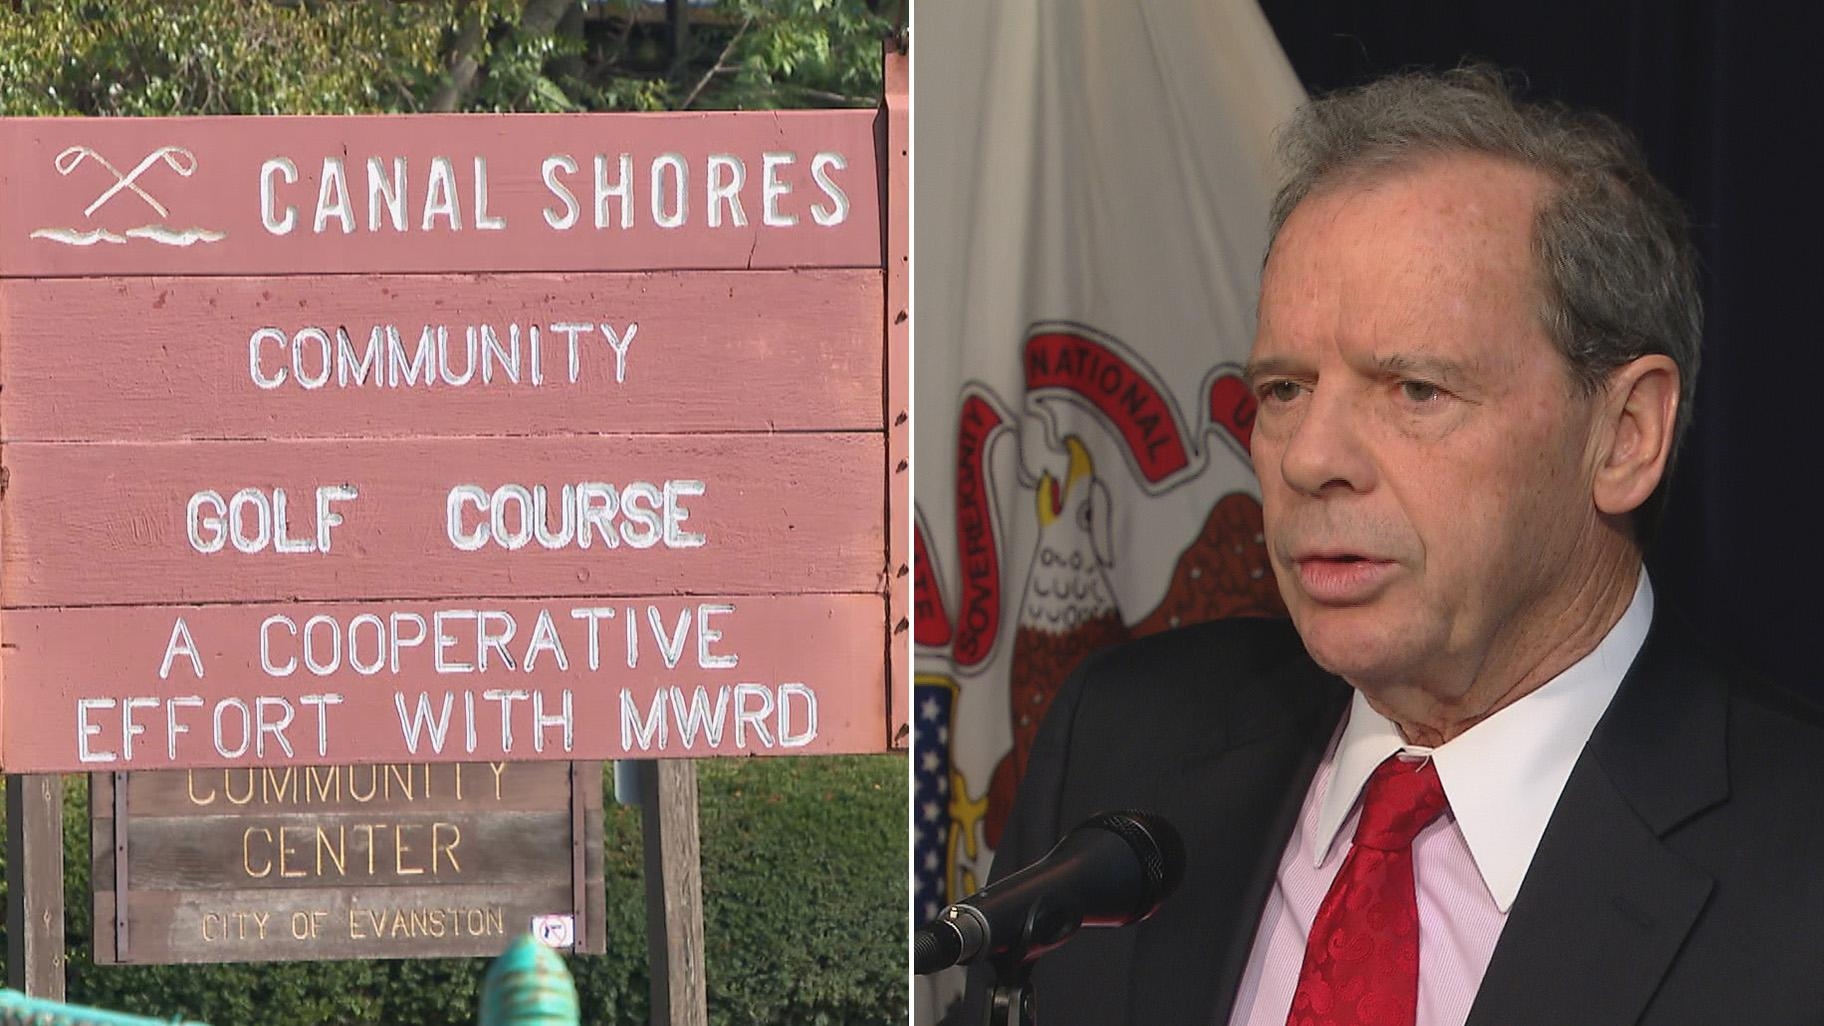 A sign for the Canal Shores golf club, left, and a file photo of Illinois Senate President John Cullerton. (WTTW News)